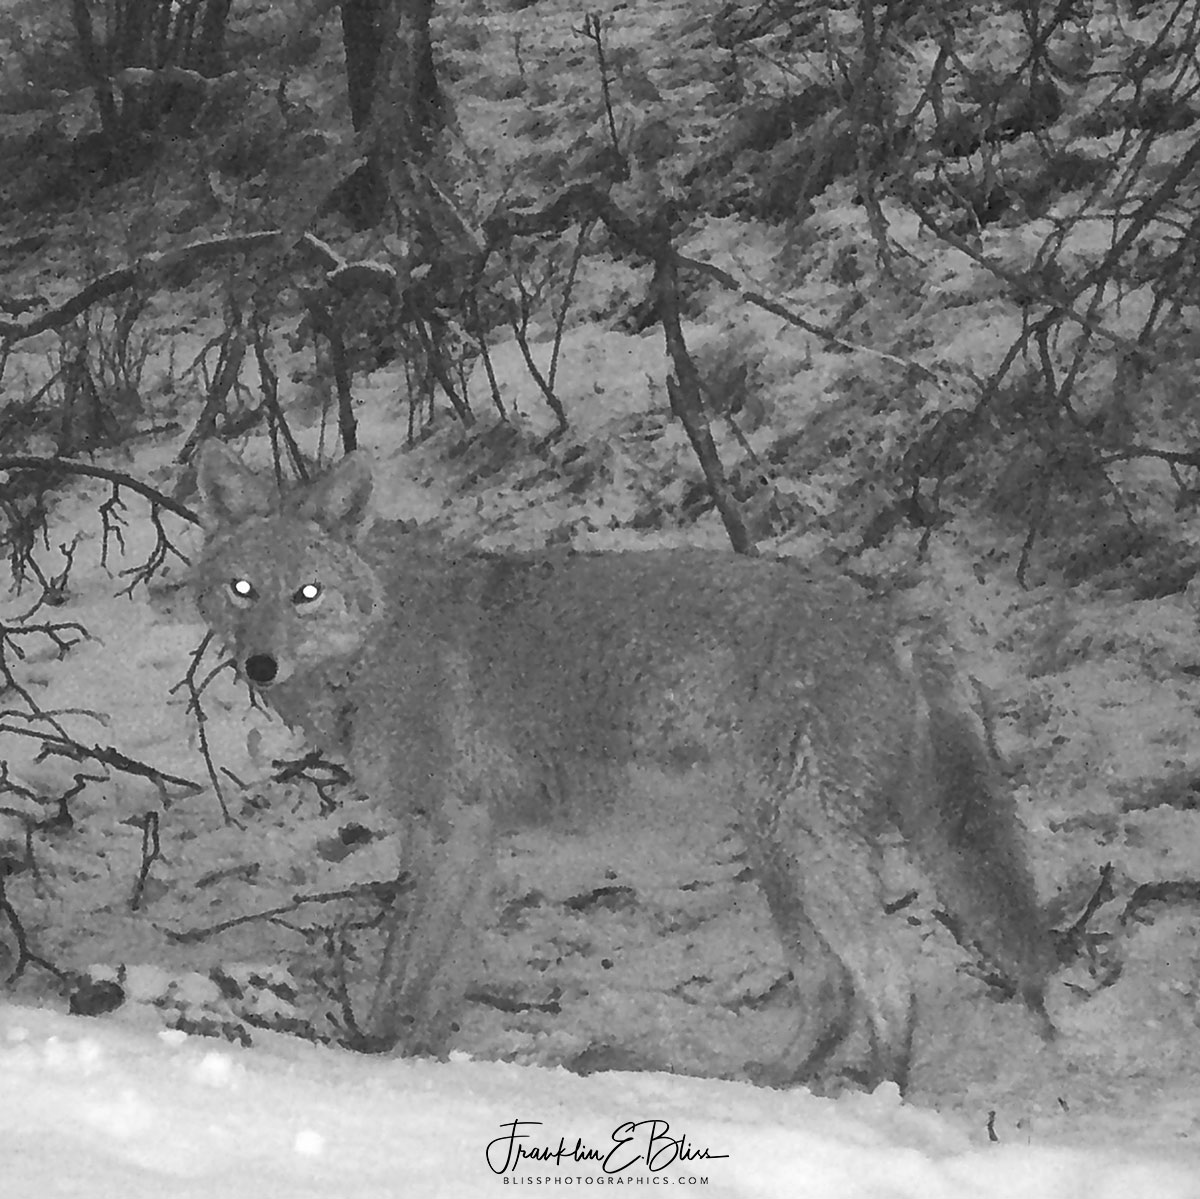 Infra-red Coyote Capture